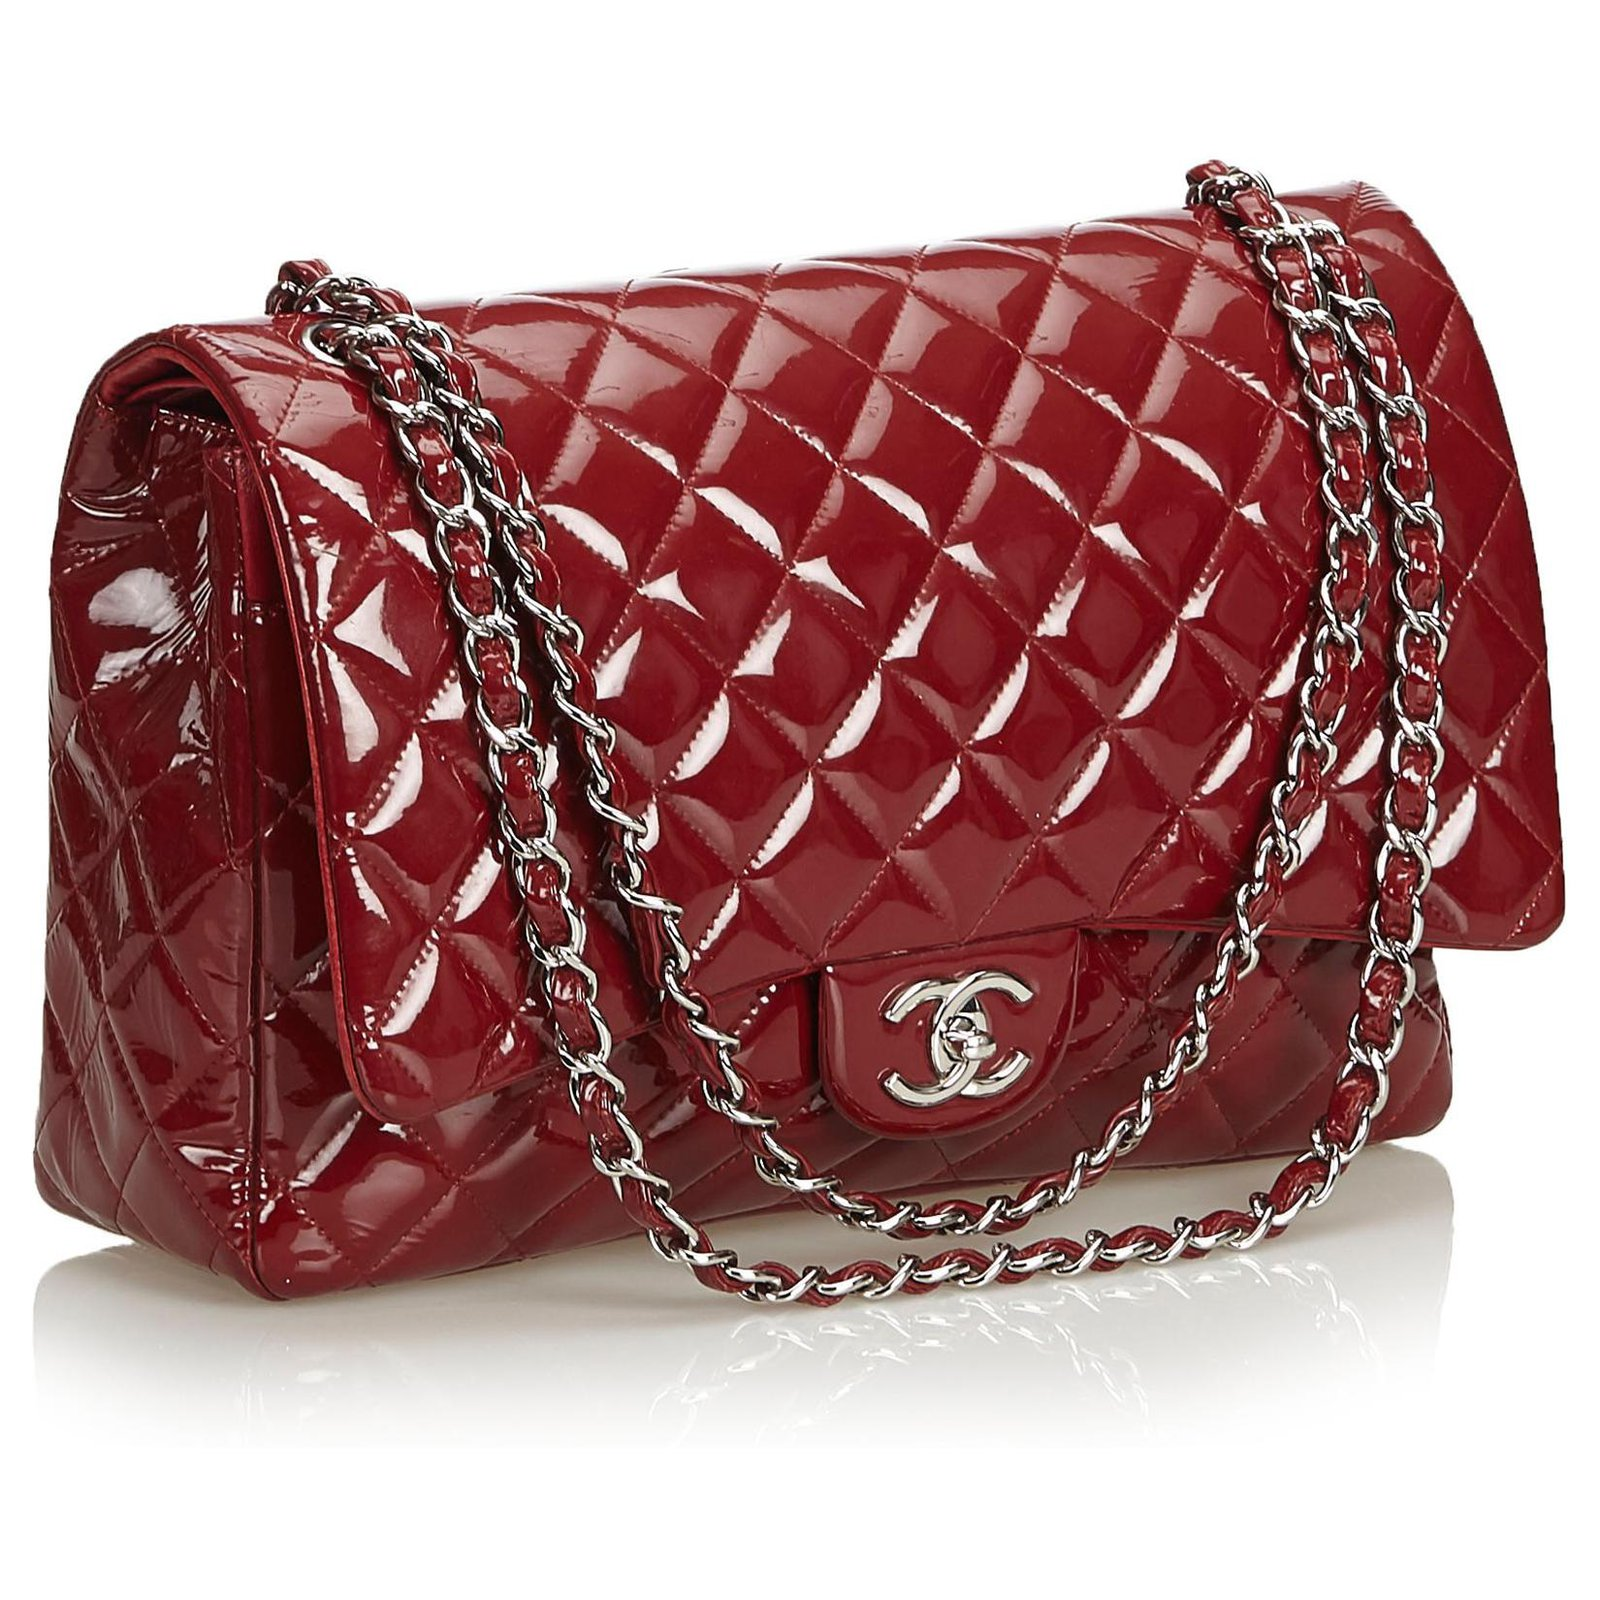 da8a0b598d51 Chanel Chanel Red Classic Maxi Patent Leather lined Flap Bag Handbags  Leather,Patent leather Red ref.122928 - Joli Closet